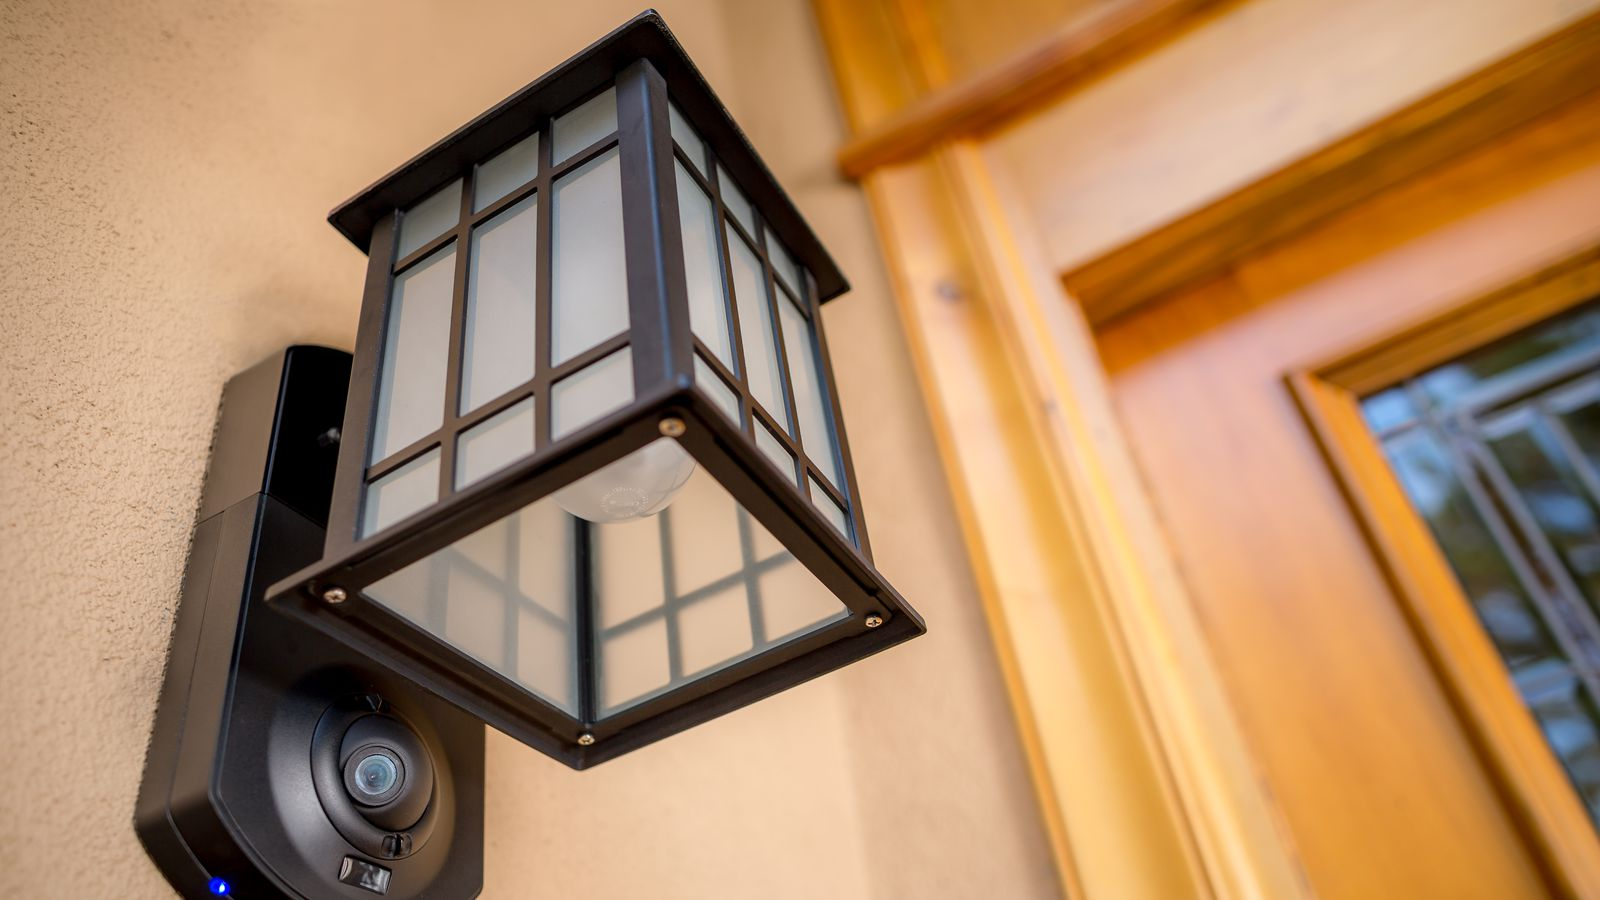 Kuna Is A Light Fixture That Doubles As A Home Security